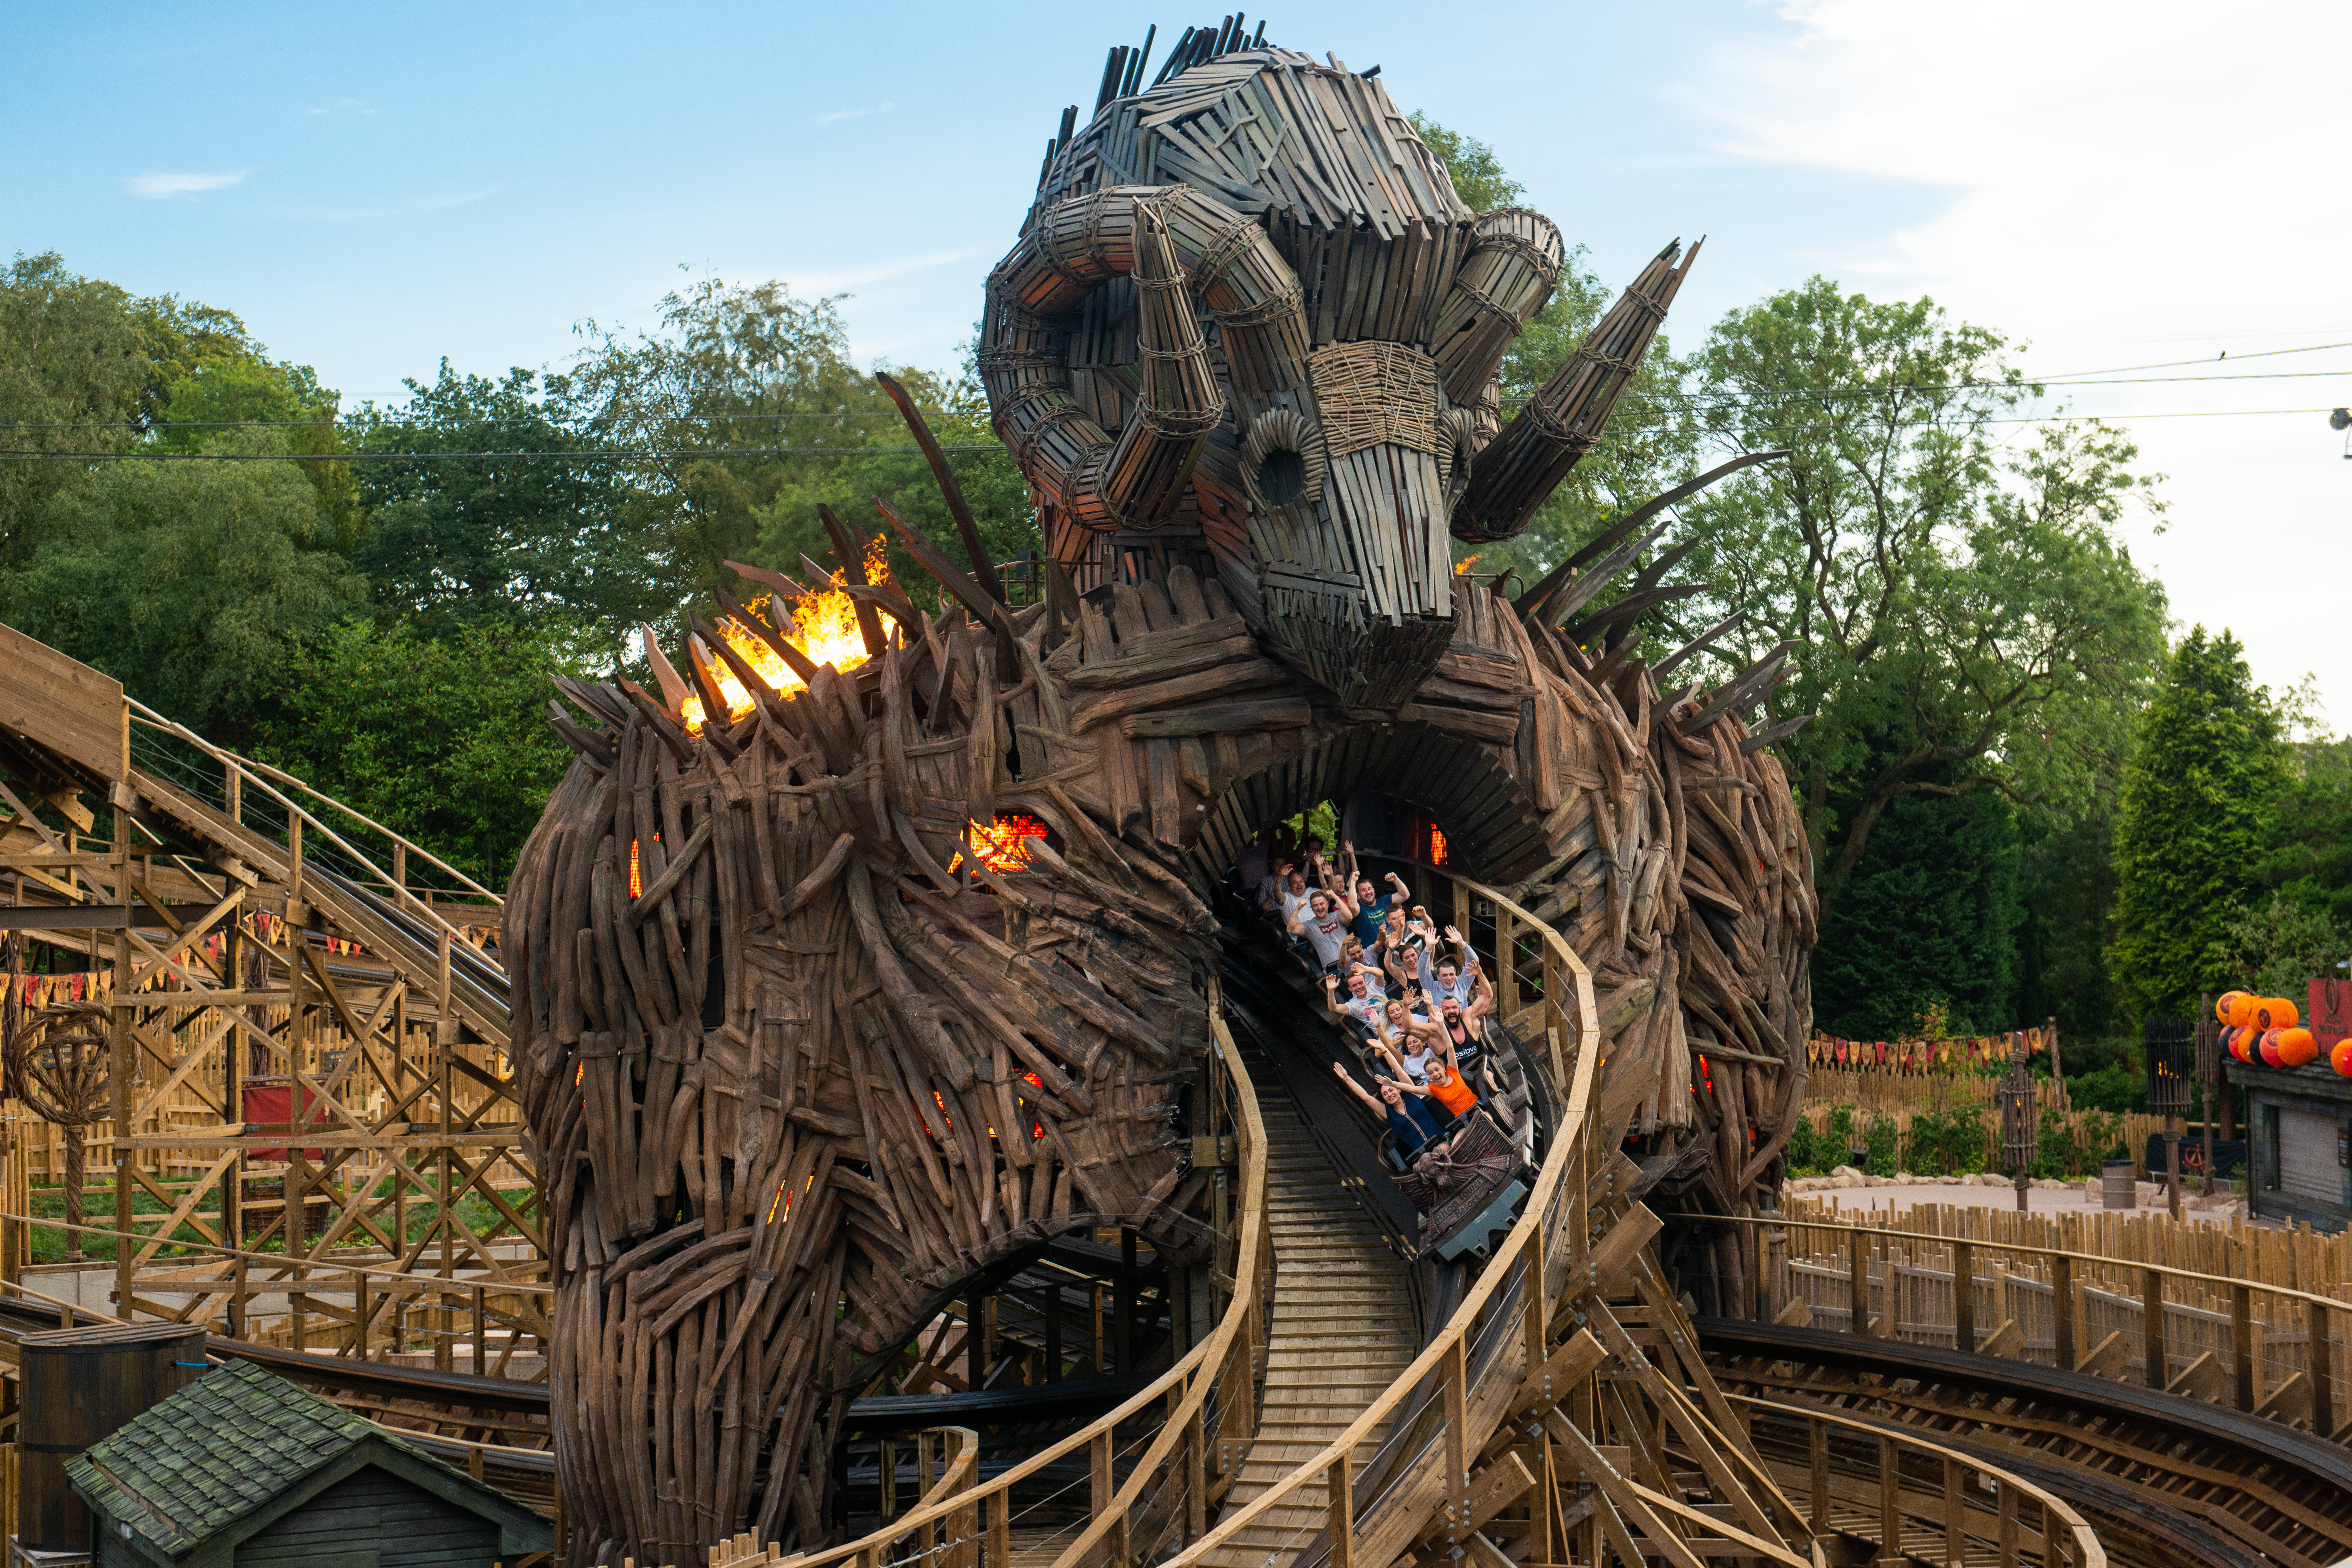 Wicker Man at the Alton Towers Resort